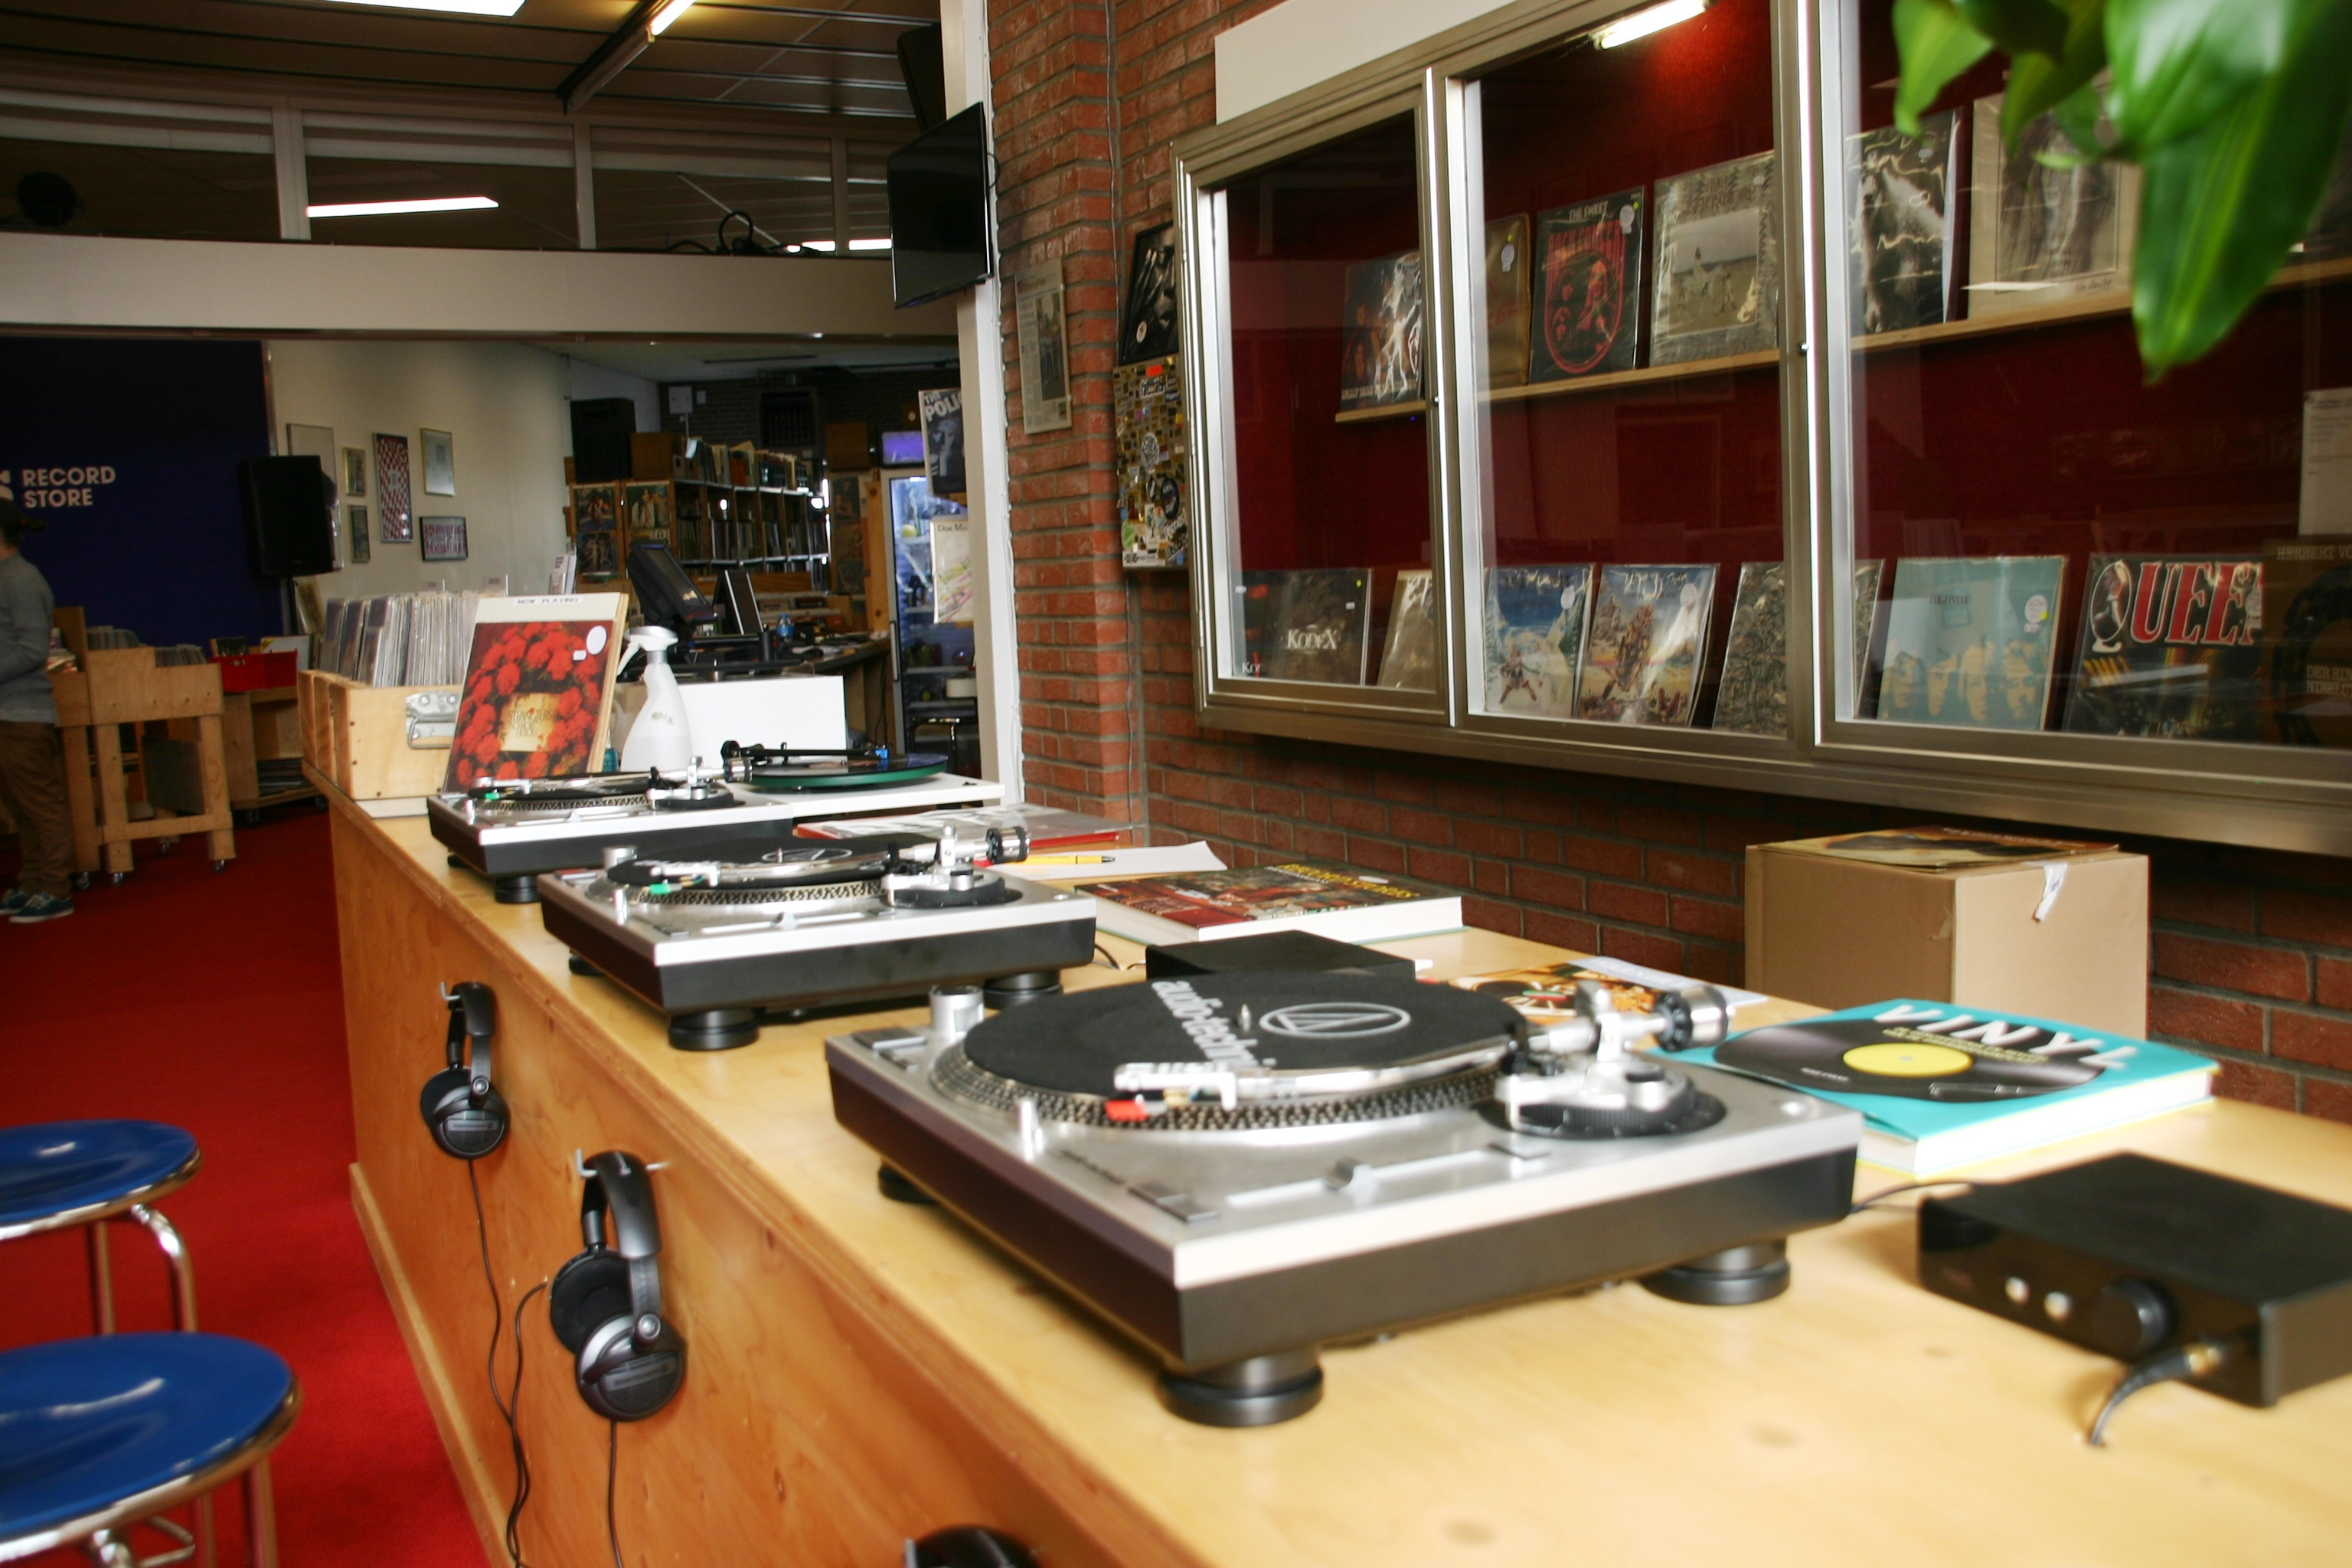 Diggers_record_store_GN_2017017